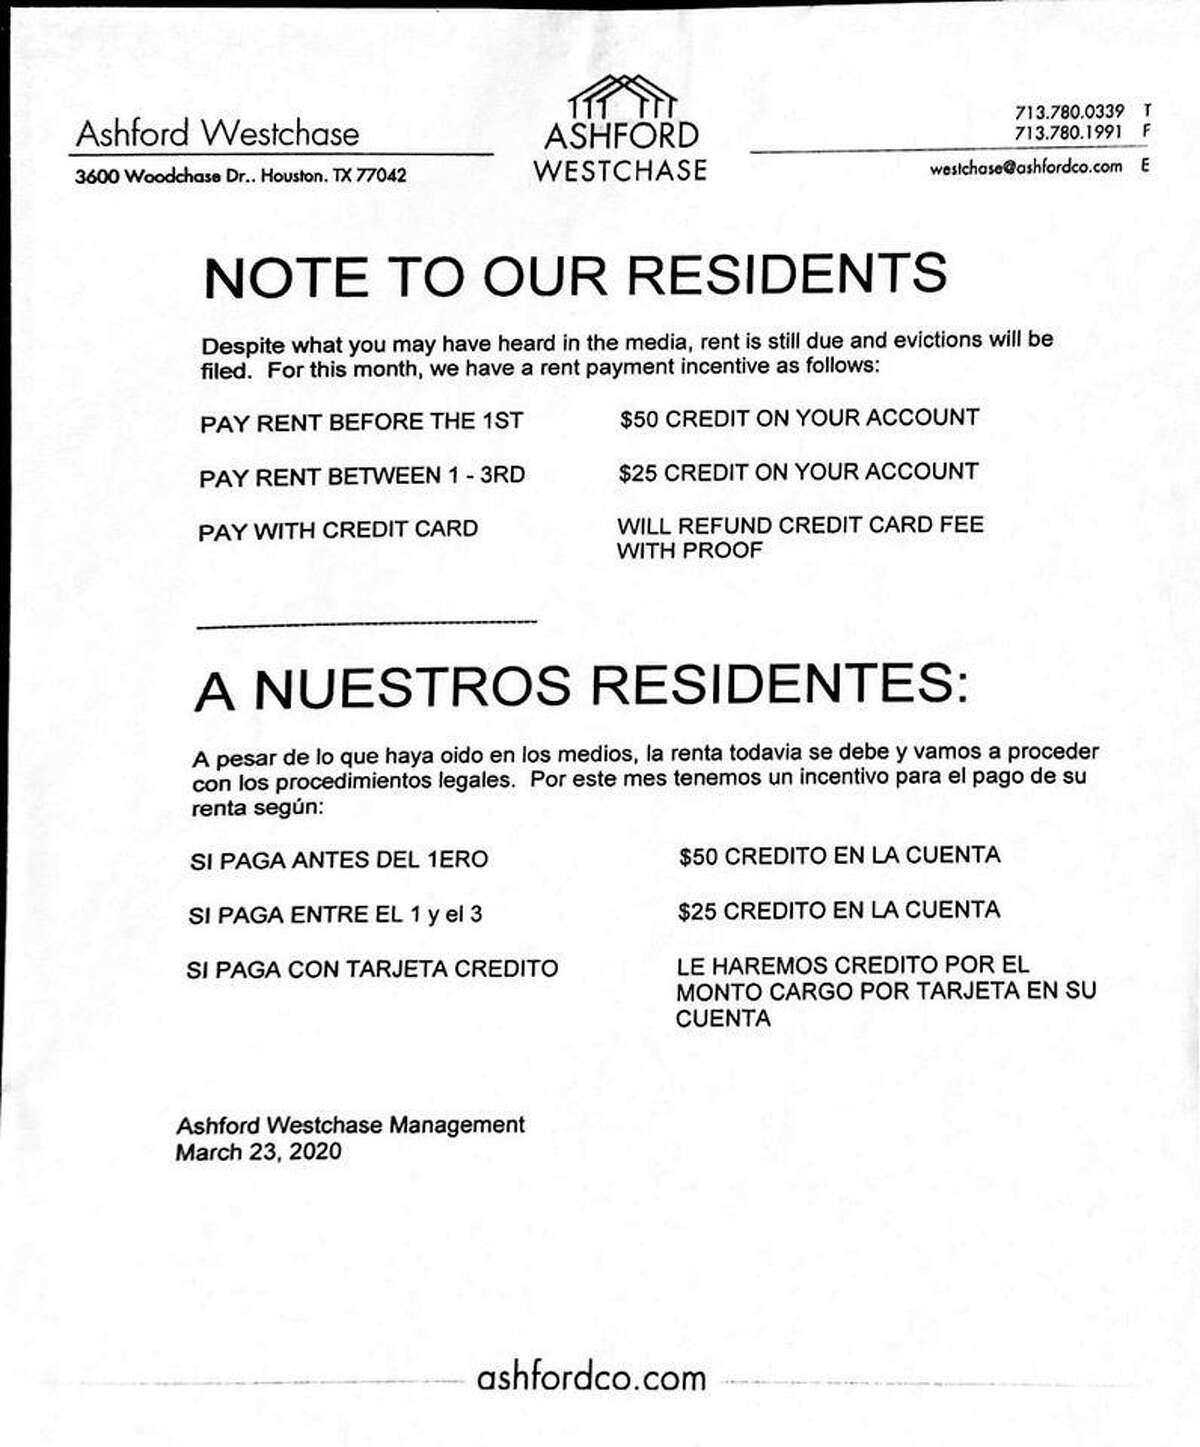 A notice posted at the Ashford Westchase Apartments.